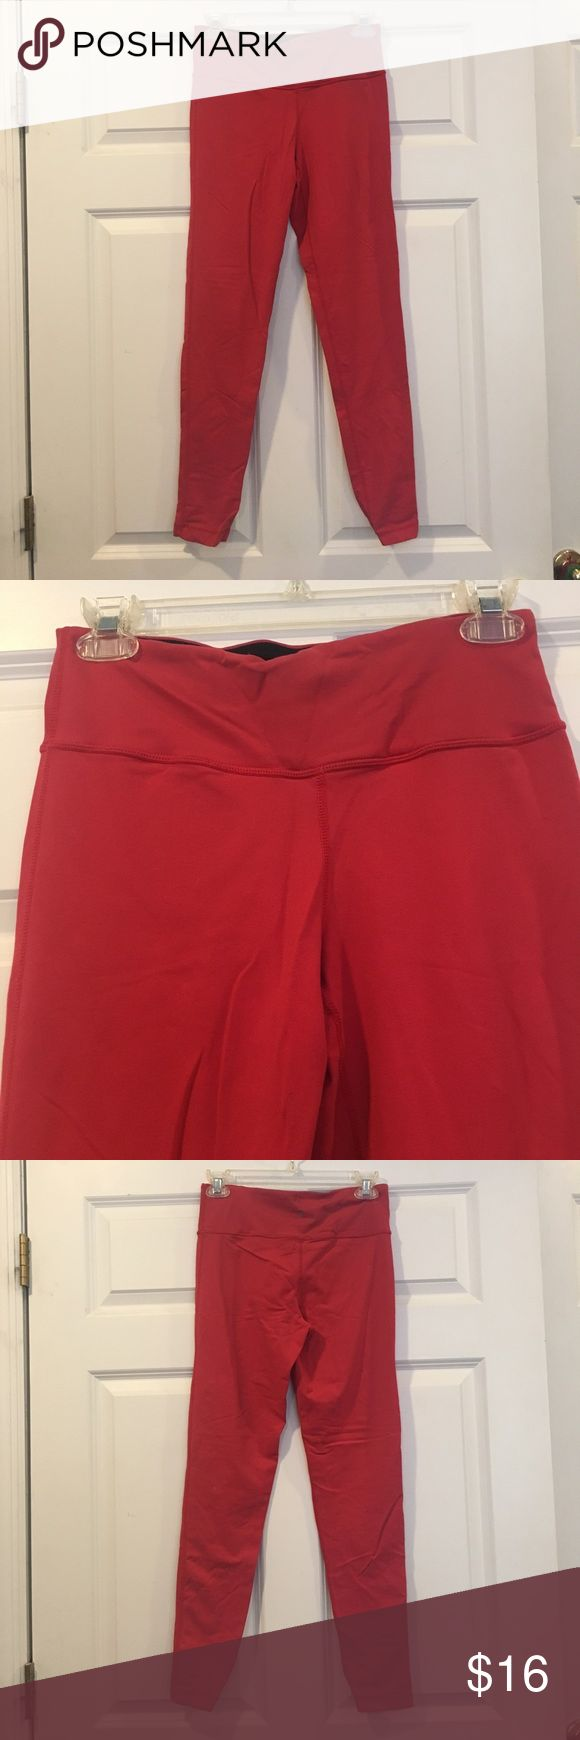 Red-Orange Gym Leggings Red orange colored Gym leggings. Size x-small. Thick. 90 Degree By Reflex Pants Leggings